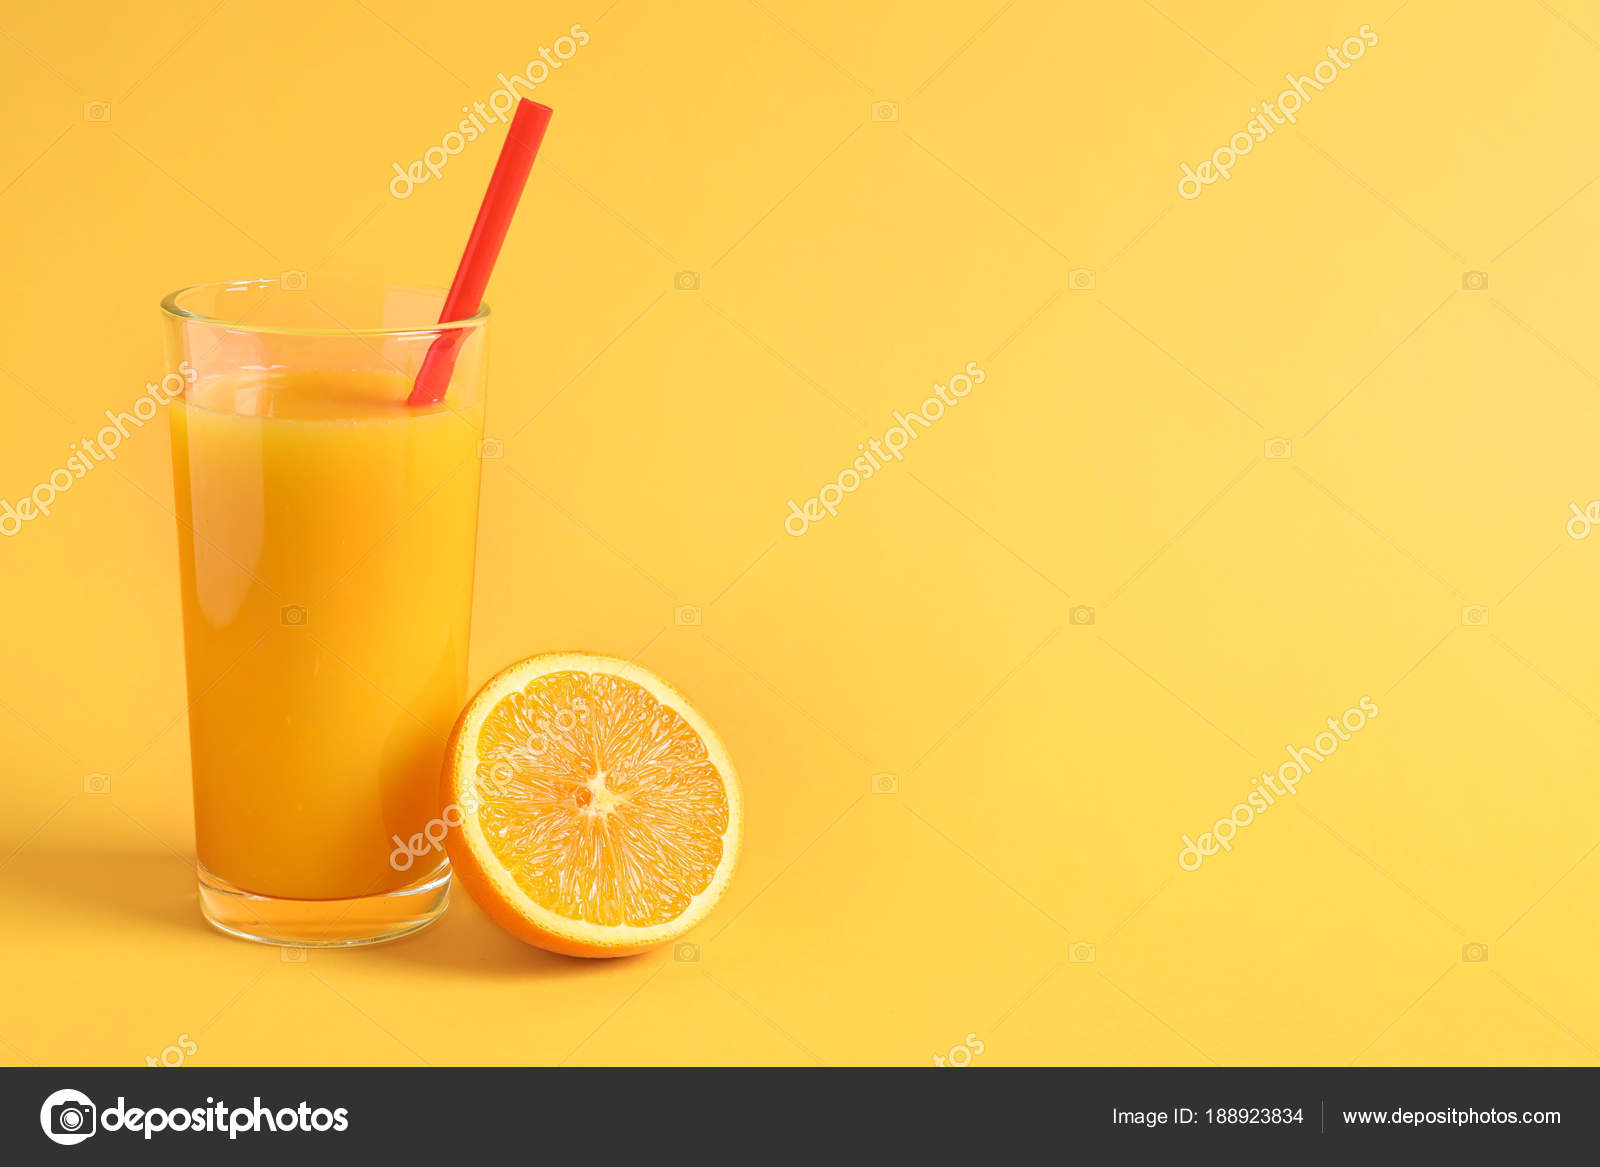 Glass Of Orange Juice With Fresh Fruit On Color Background Stock Photo C Liudmilachernetska Gmail Com 188923834,What Colour Is Orange And Blue